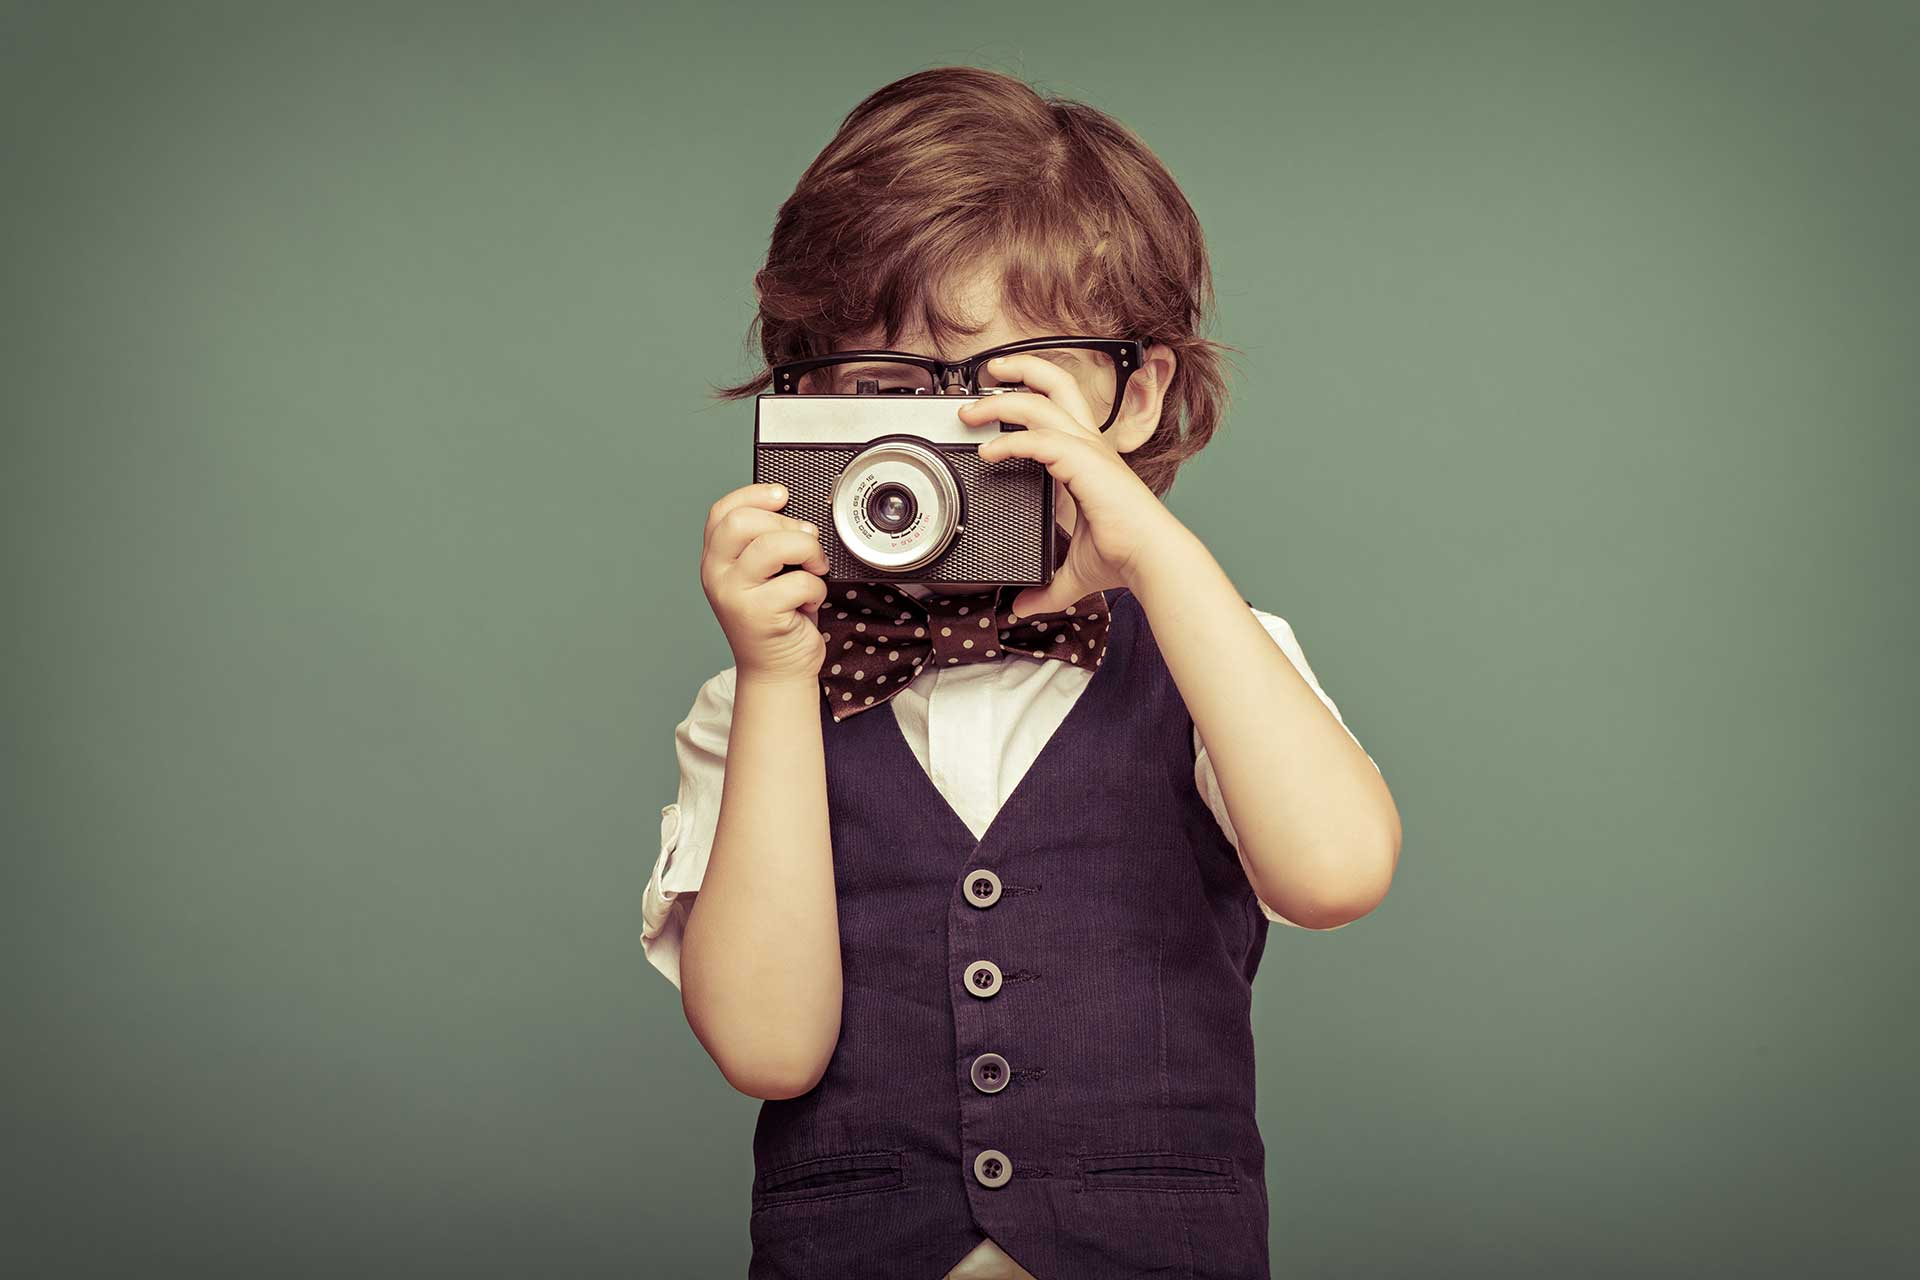 Ditch Stock Photos! Here are 10 Pro Tips for Taking High-Quality Photos Yourself